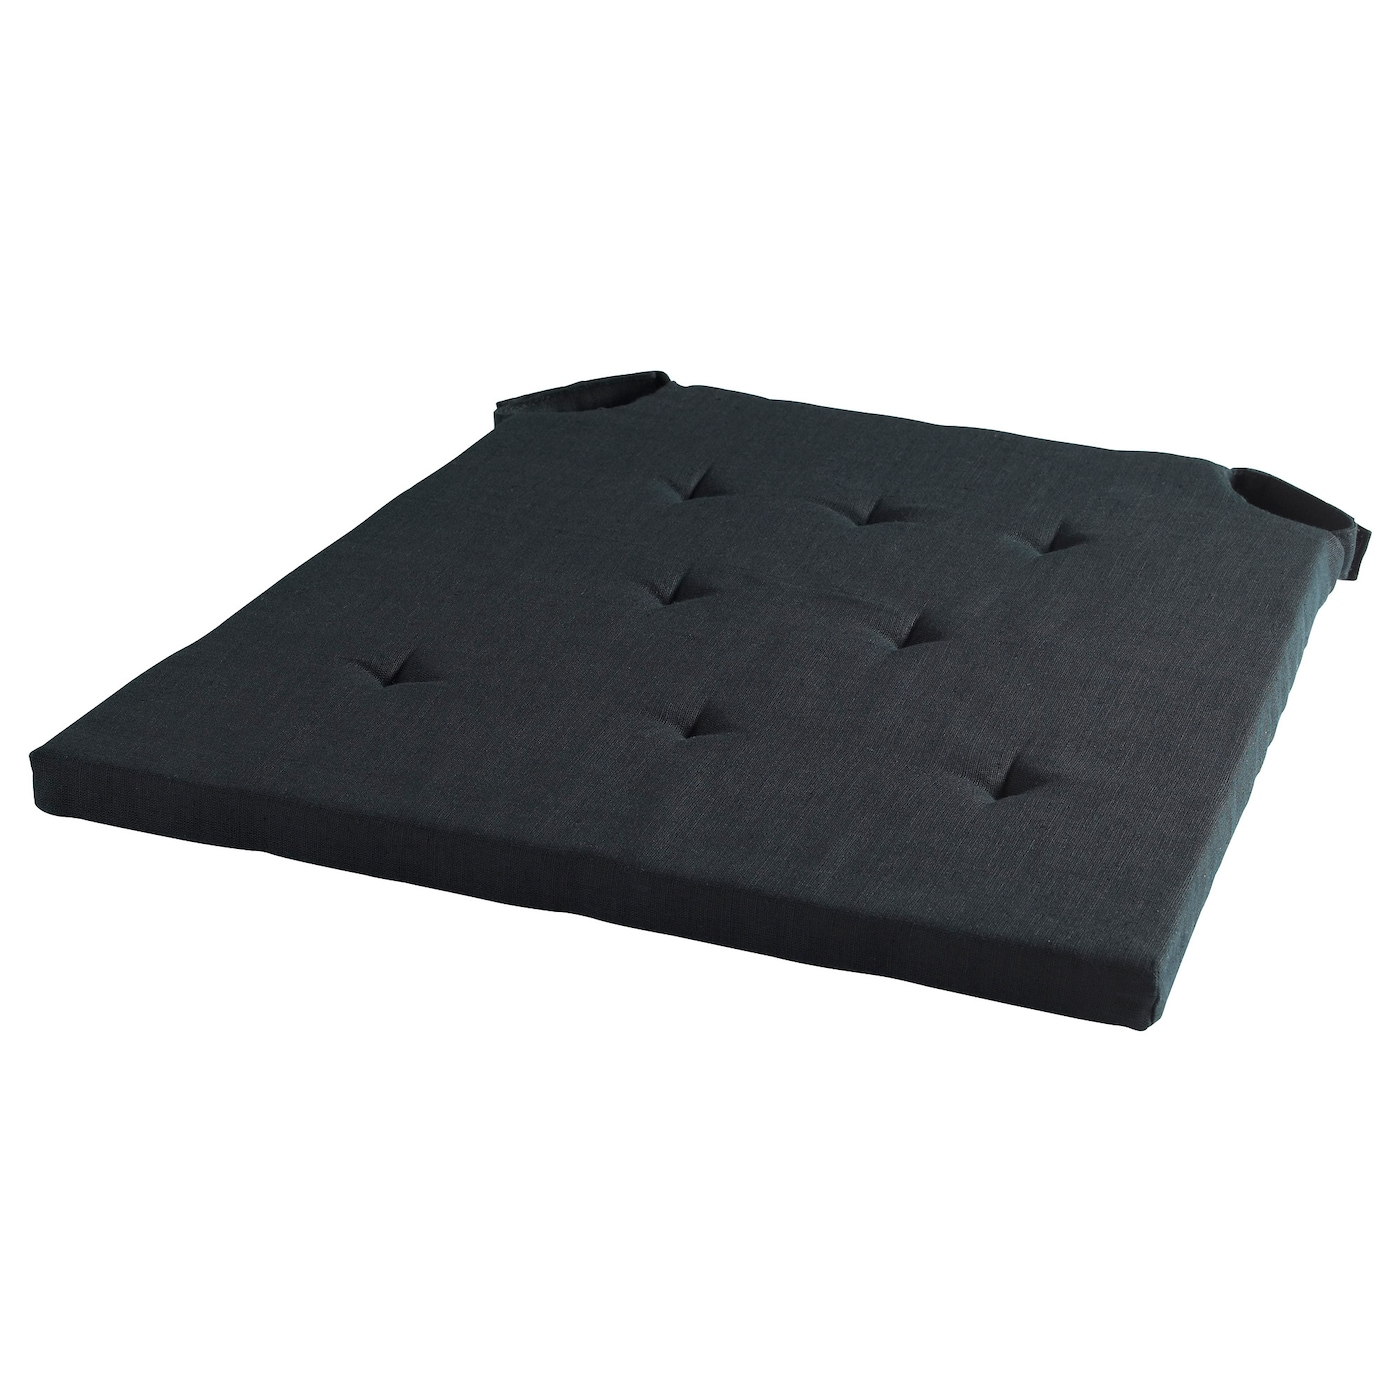 Black chair cushion - Ikea Admete Chair Pad Polyurethane Foam Provides Great Comfort And Long Lasting Support